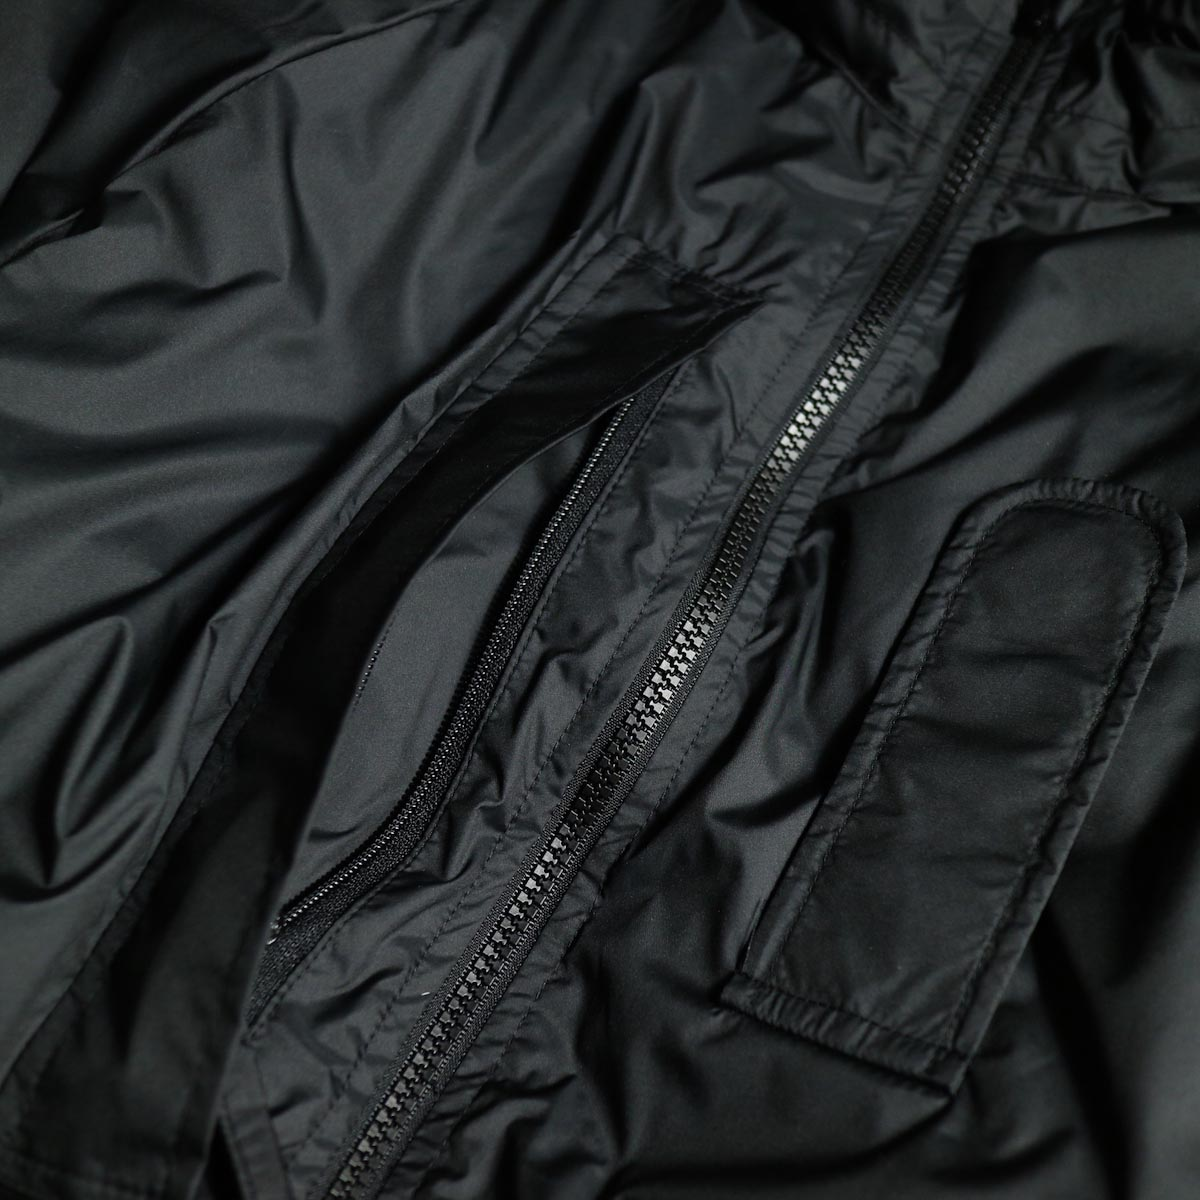 J&S Franklin / BRITISH ARMY PCS LIGHT WEIGHT DOWN JACKET (Black) ポケット